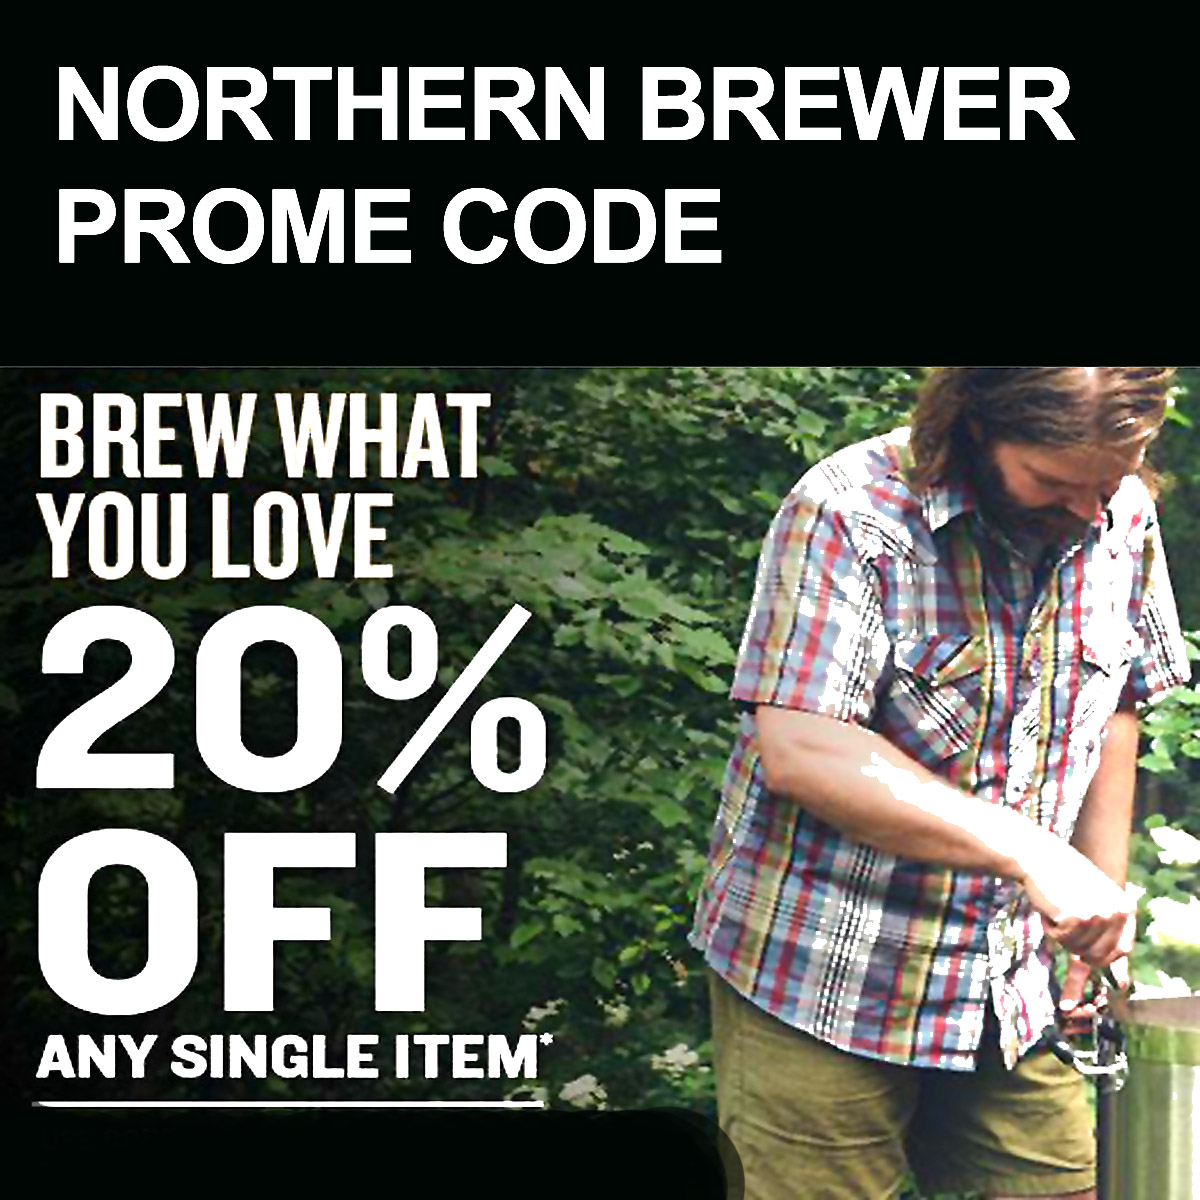 Home Wine Making Coupon Codes for Save 20% On A Single Item at NorthernBrewer.com with this Northern Brewer Promo Code Coupon Code